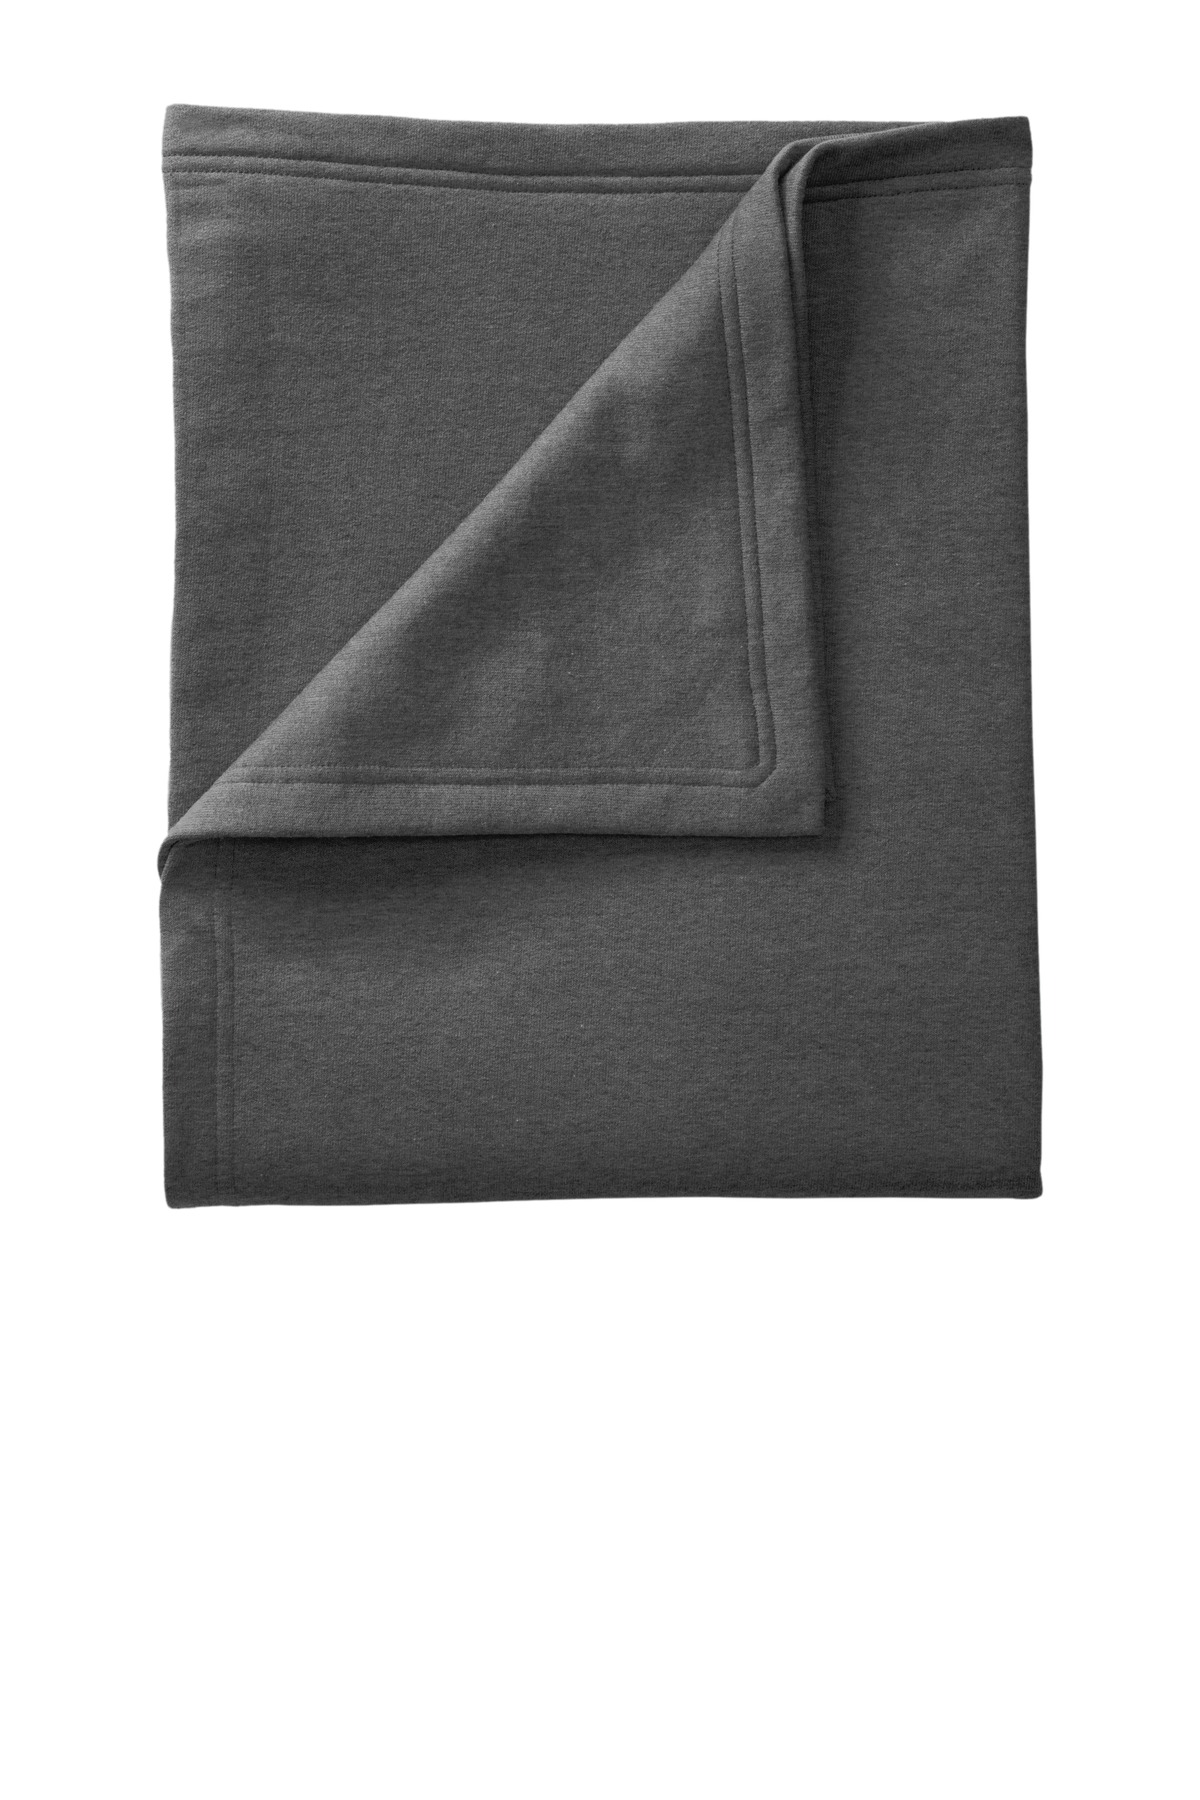 Port & Company ®  Core Fleece Sweatshirt Blanket. BP78 - Dark Heather Grey